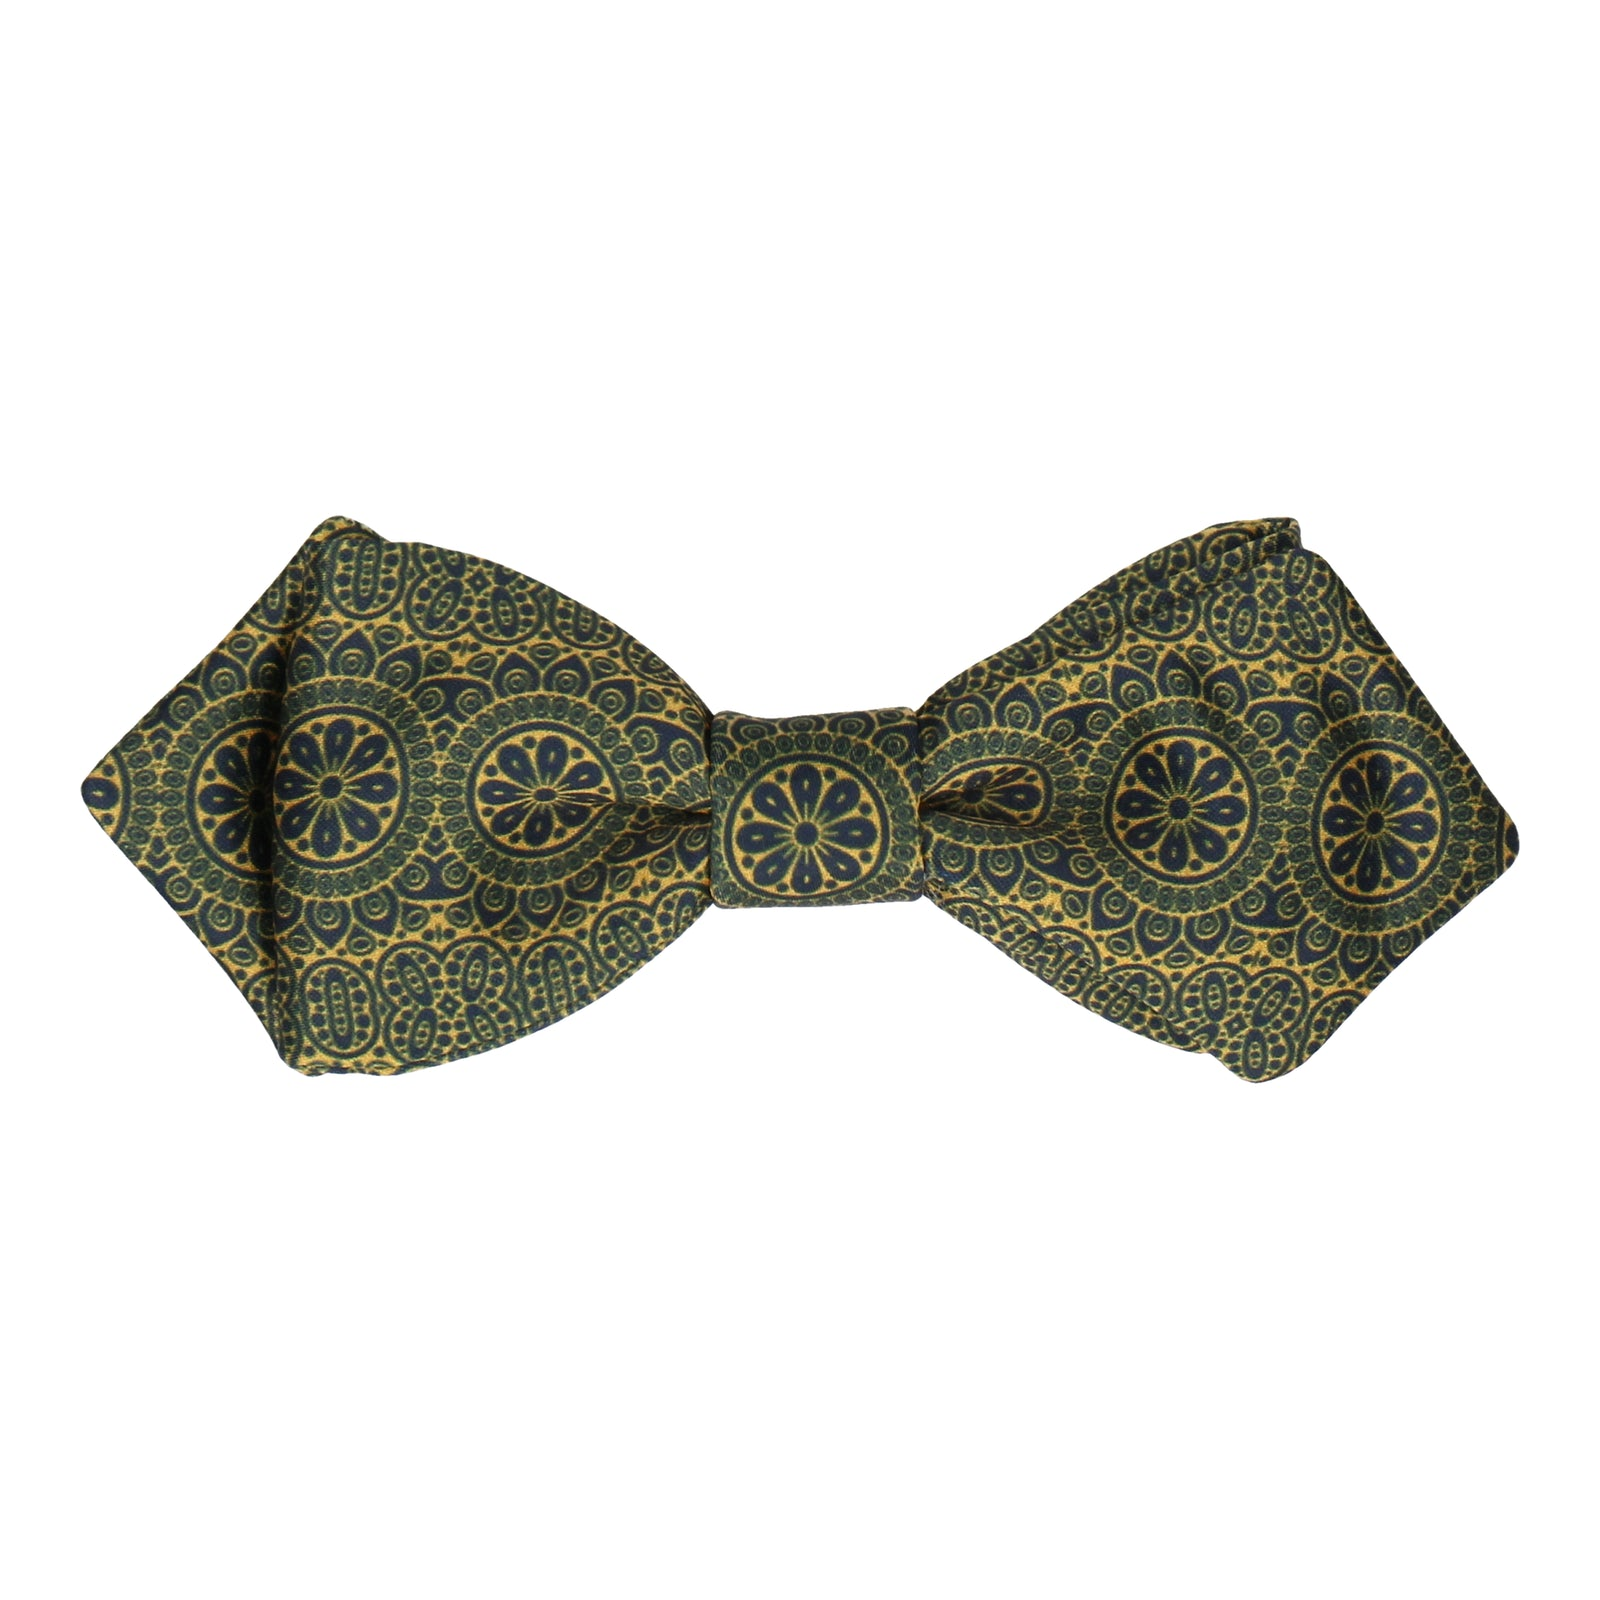 Detailed Navy Blue & Gold Bow Tie